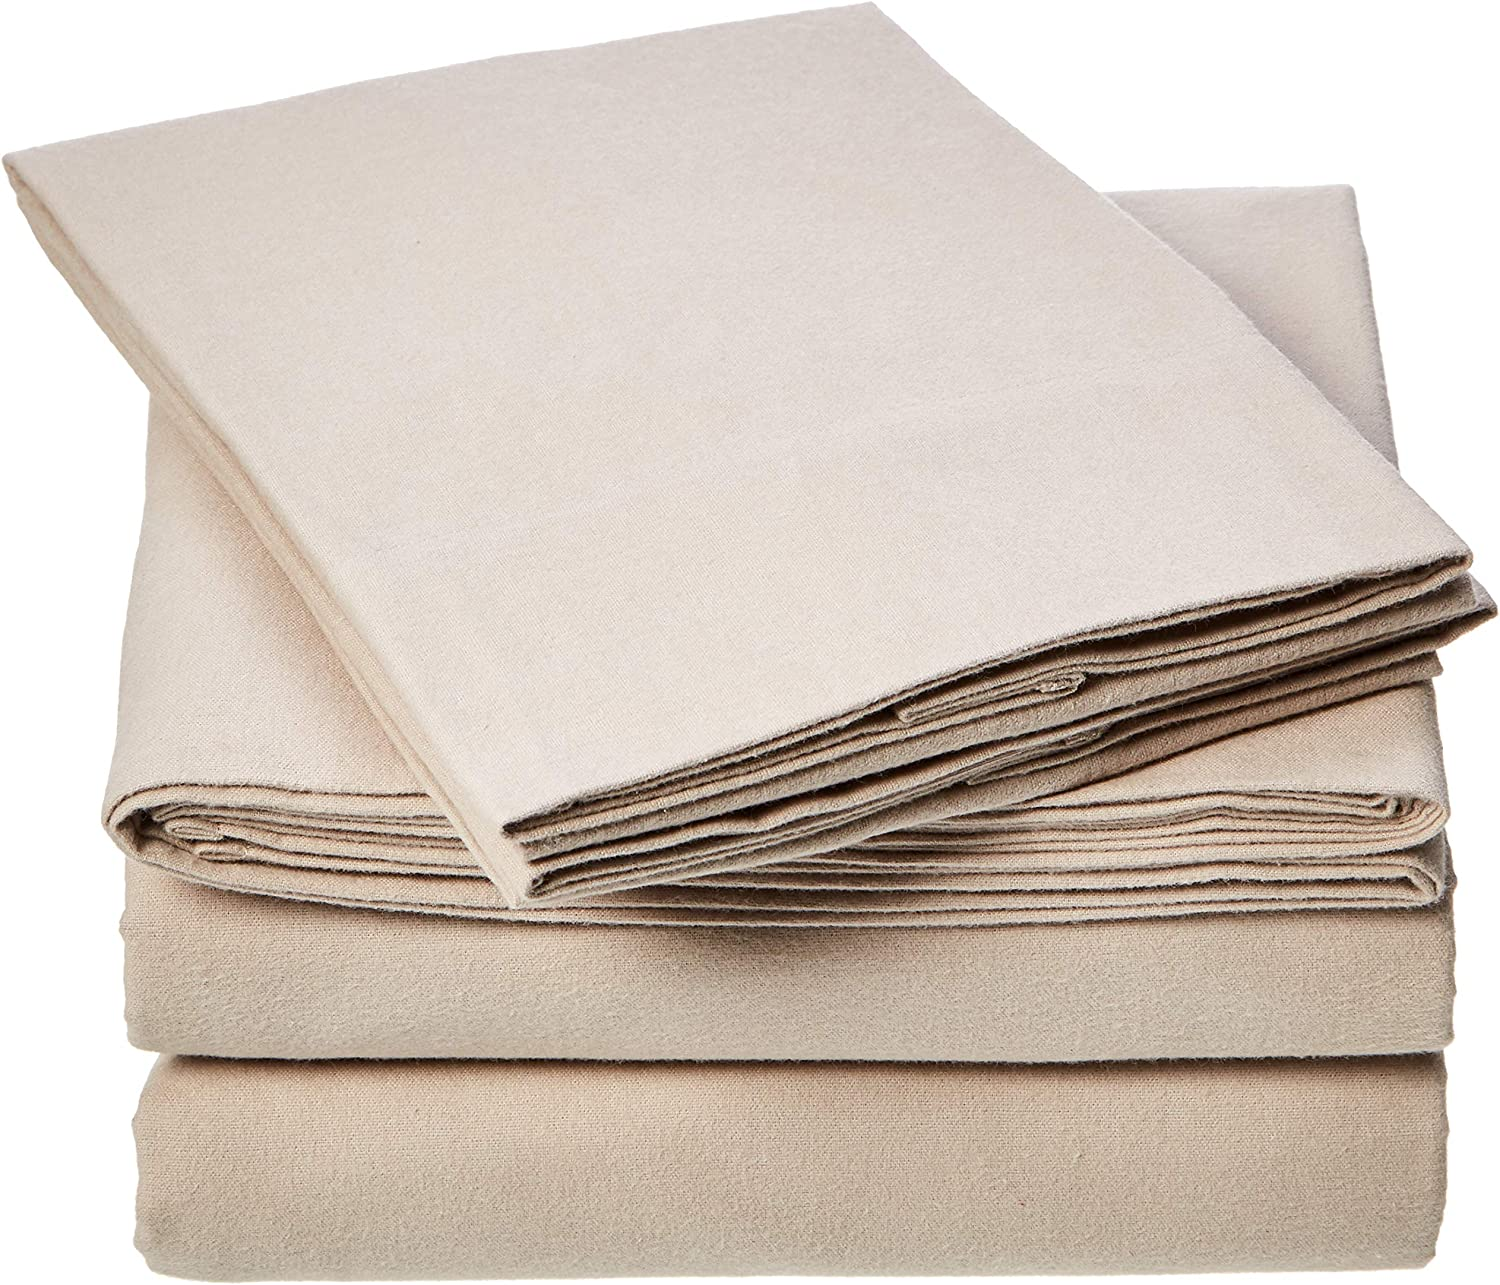 AmazonBasics Everyday Flannel Bed Sheet Set - California King, Taupe